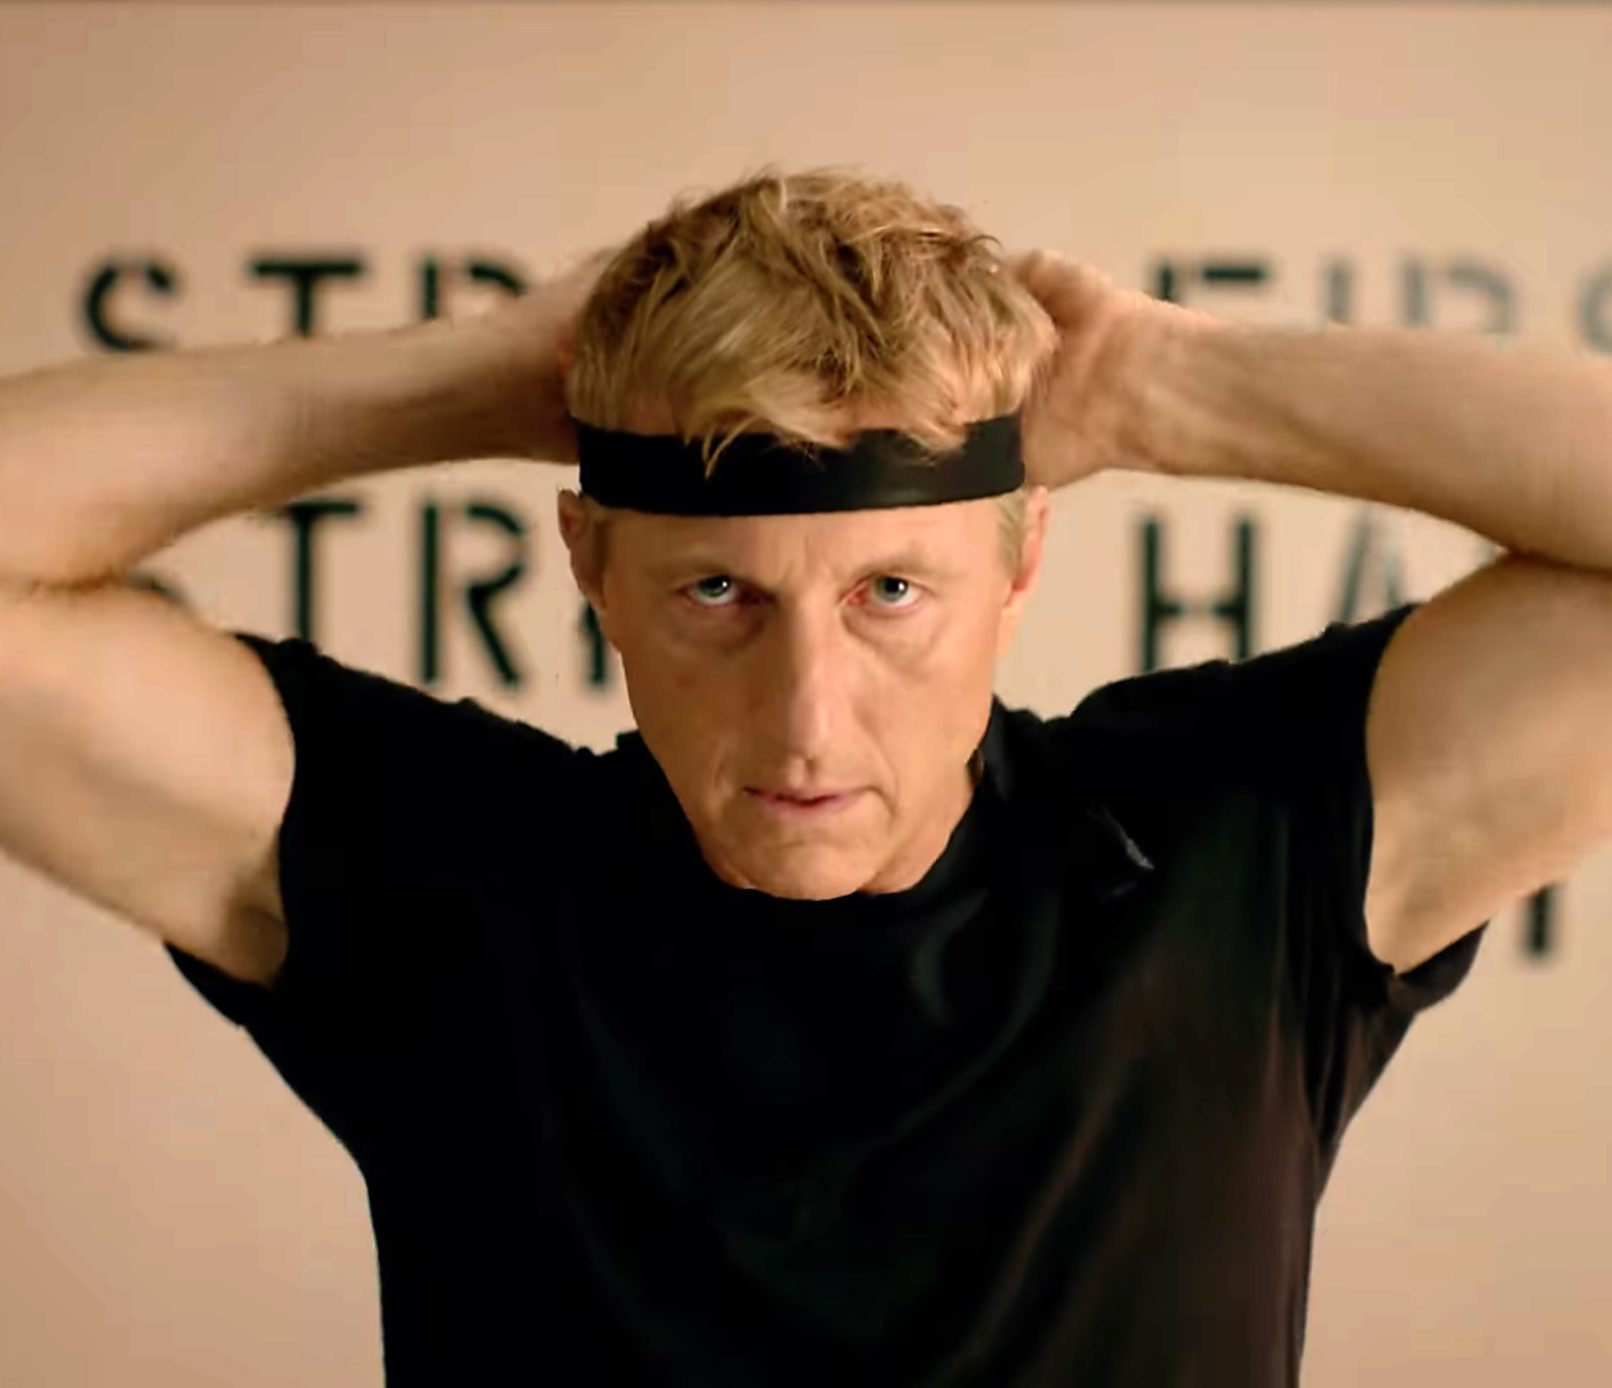 25 1 e1604675998924 30 Things You Might Not Have Known About Cobra Kai